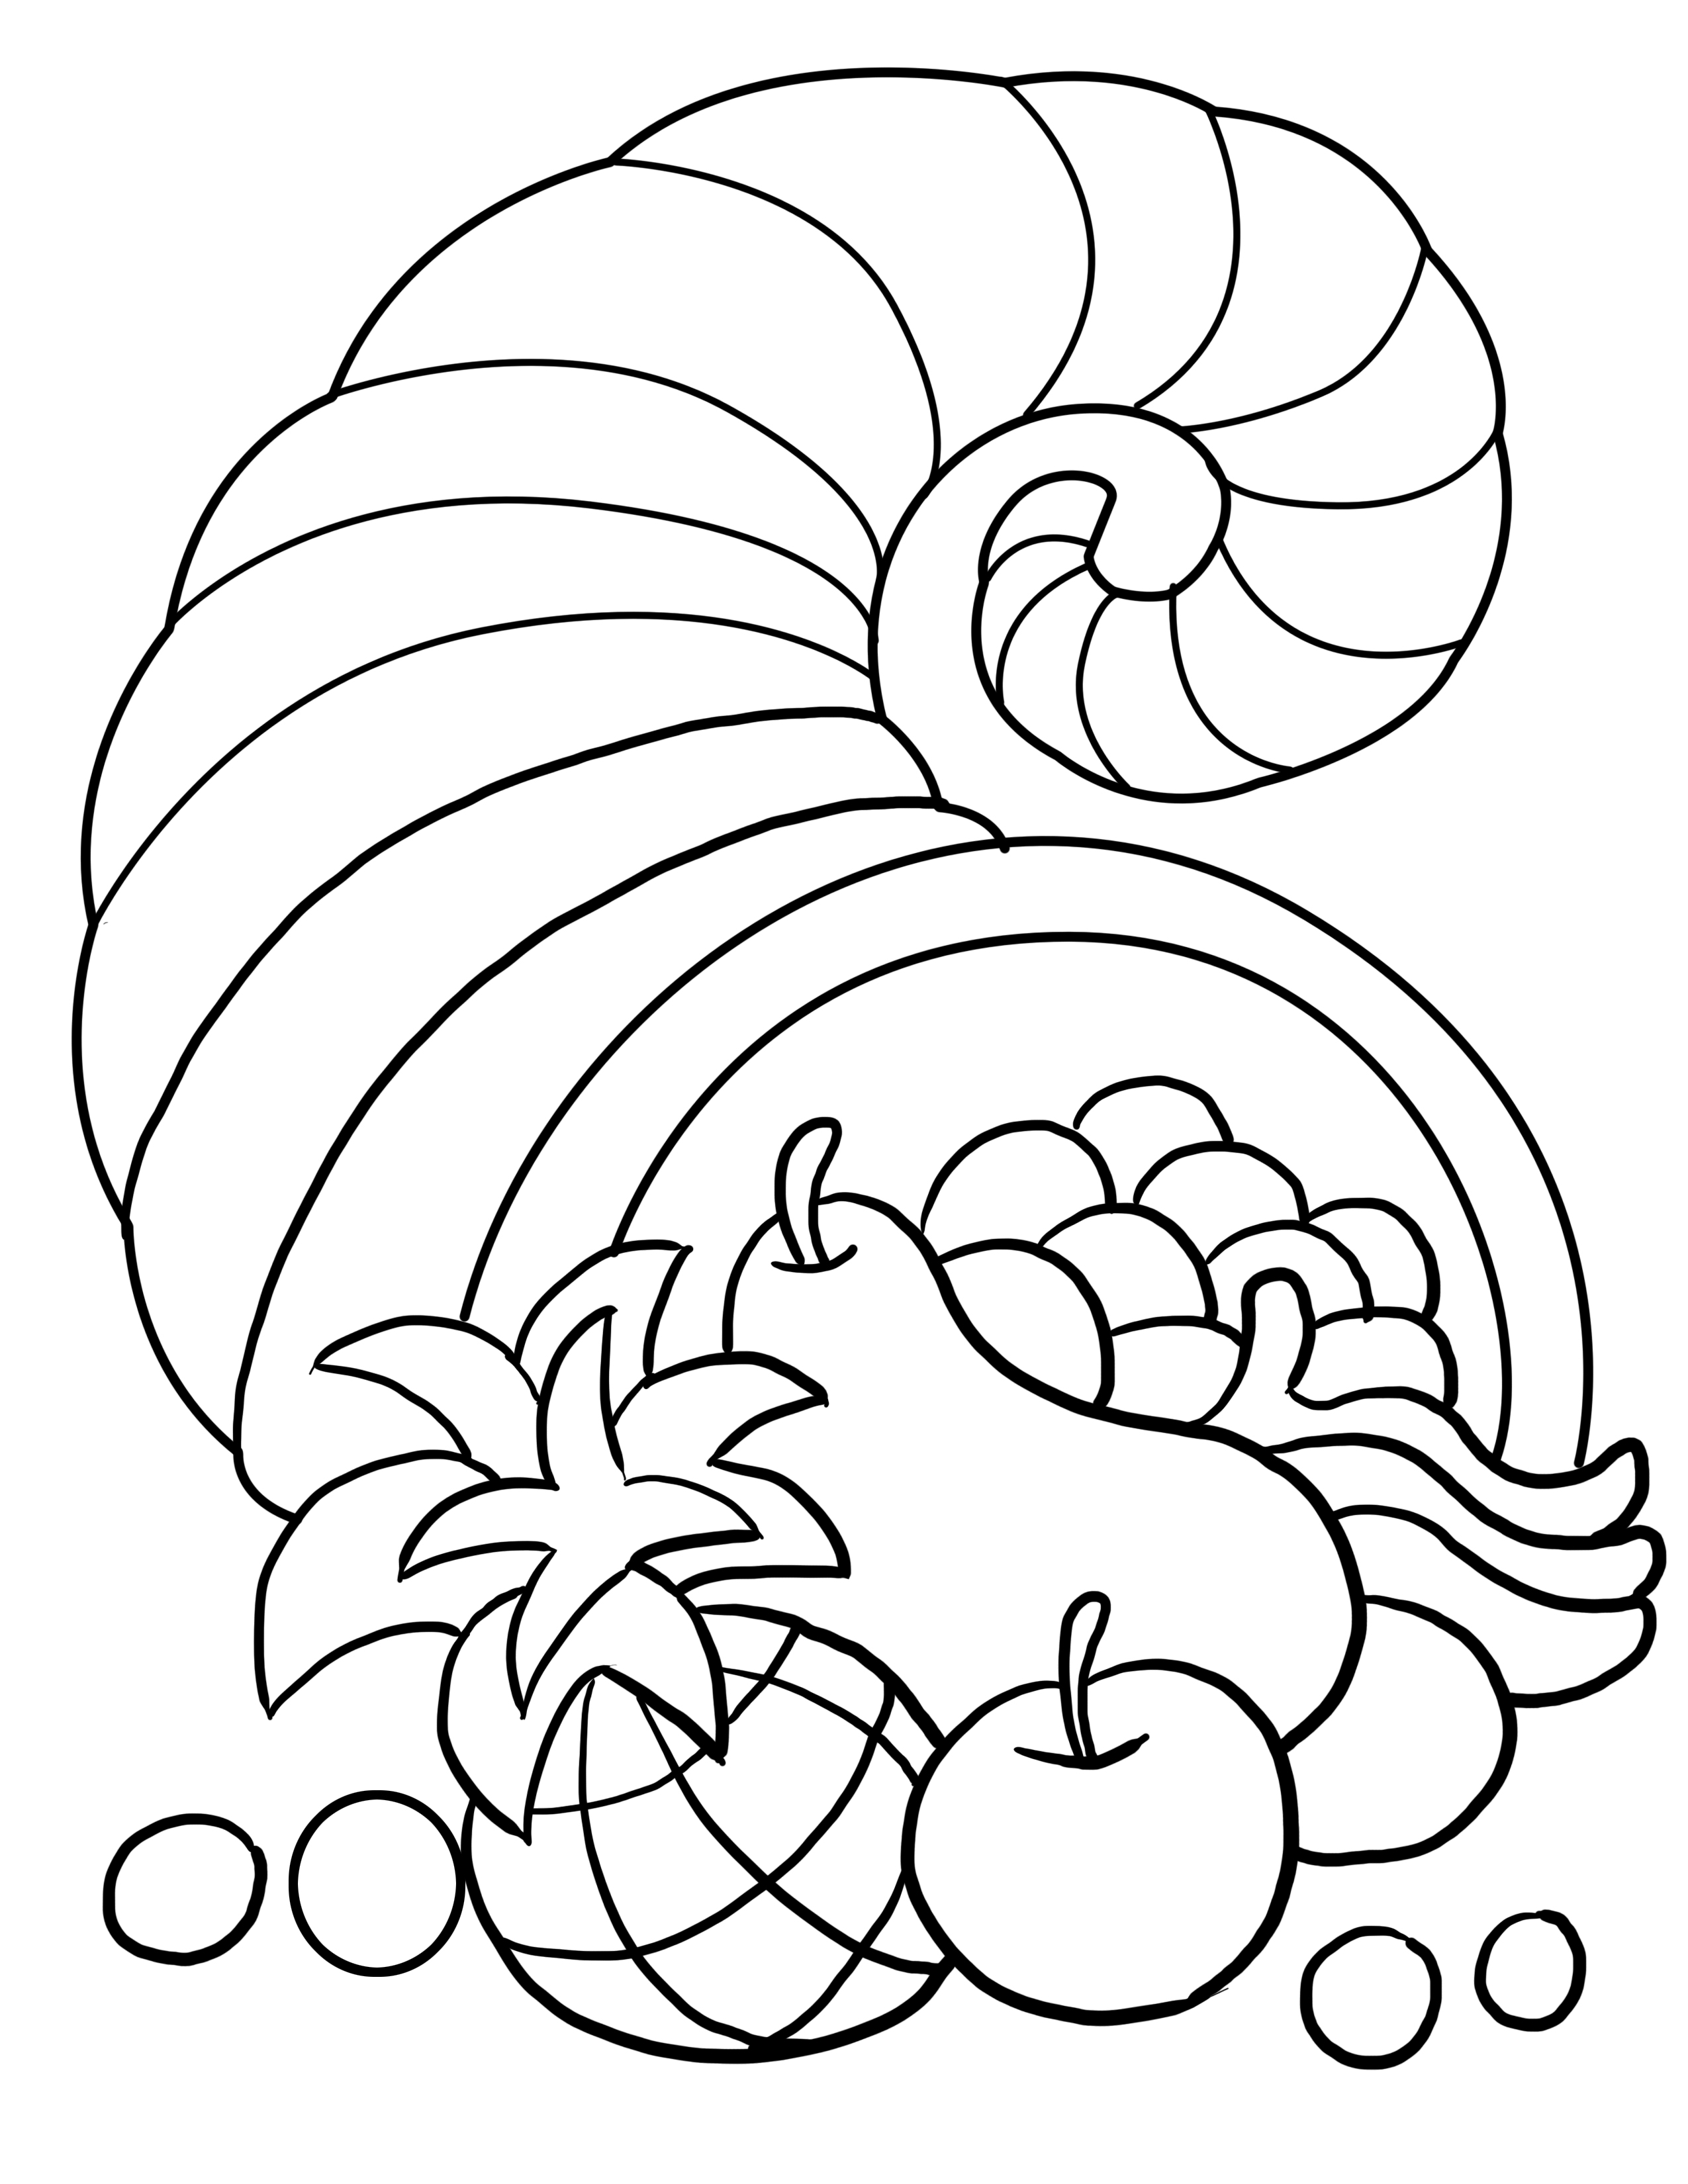 cornucopia coloring page thanksgiving cornucopia coloring pages page coloring cornucopia